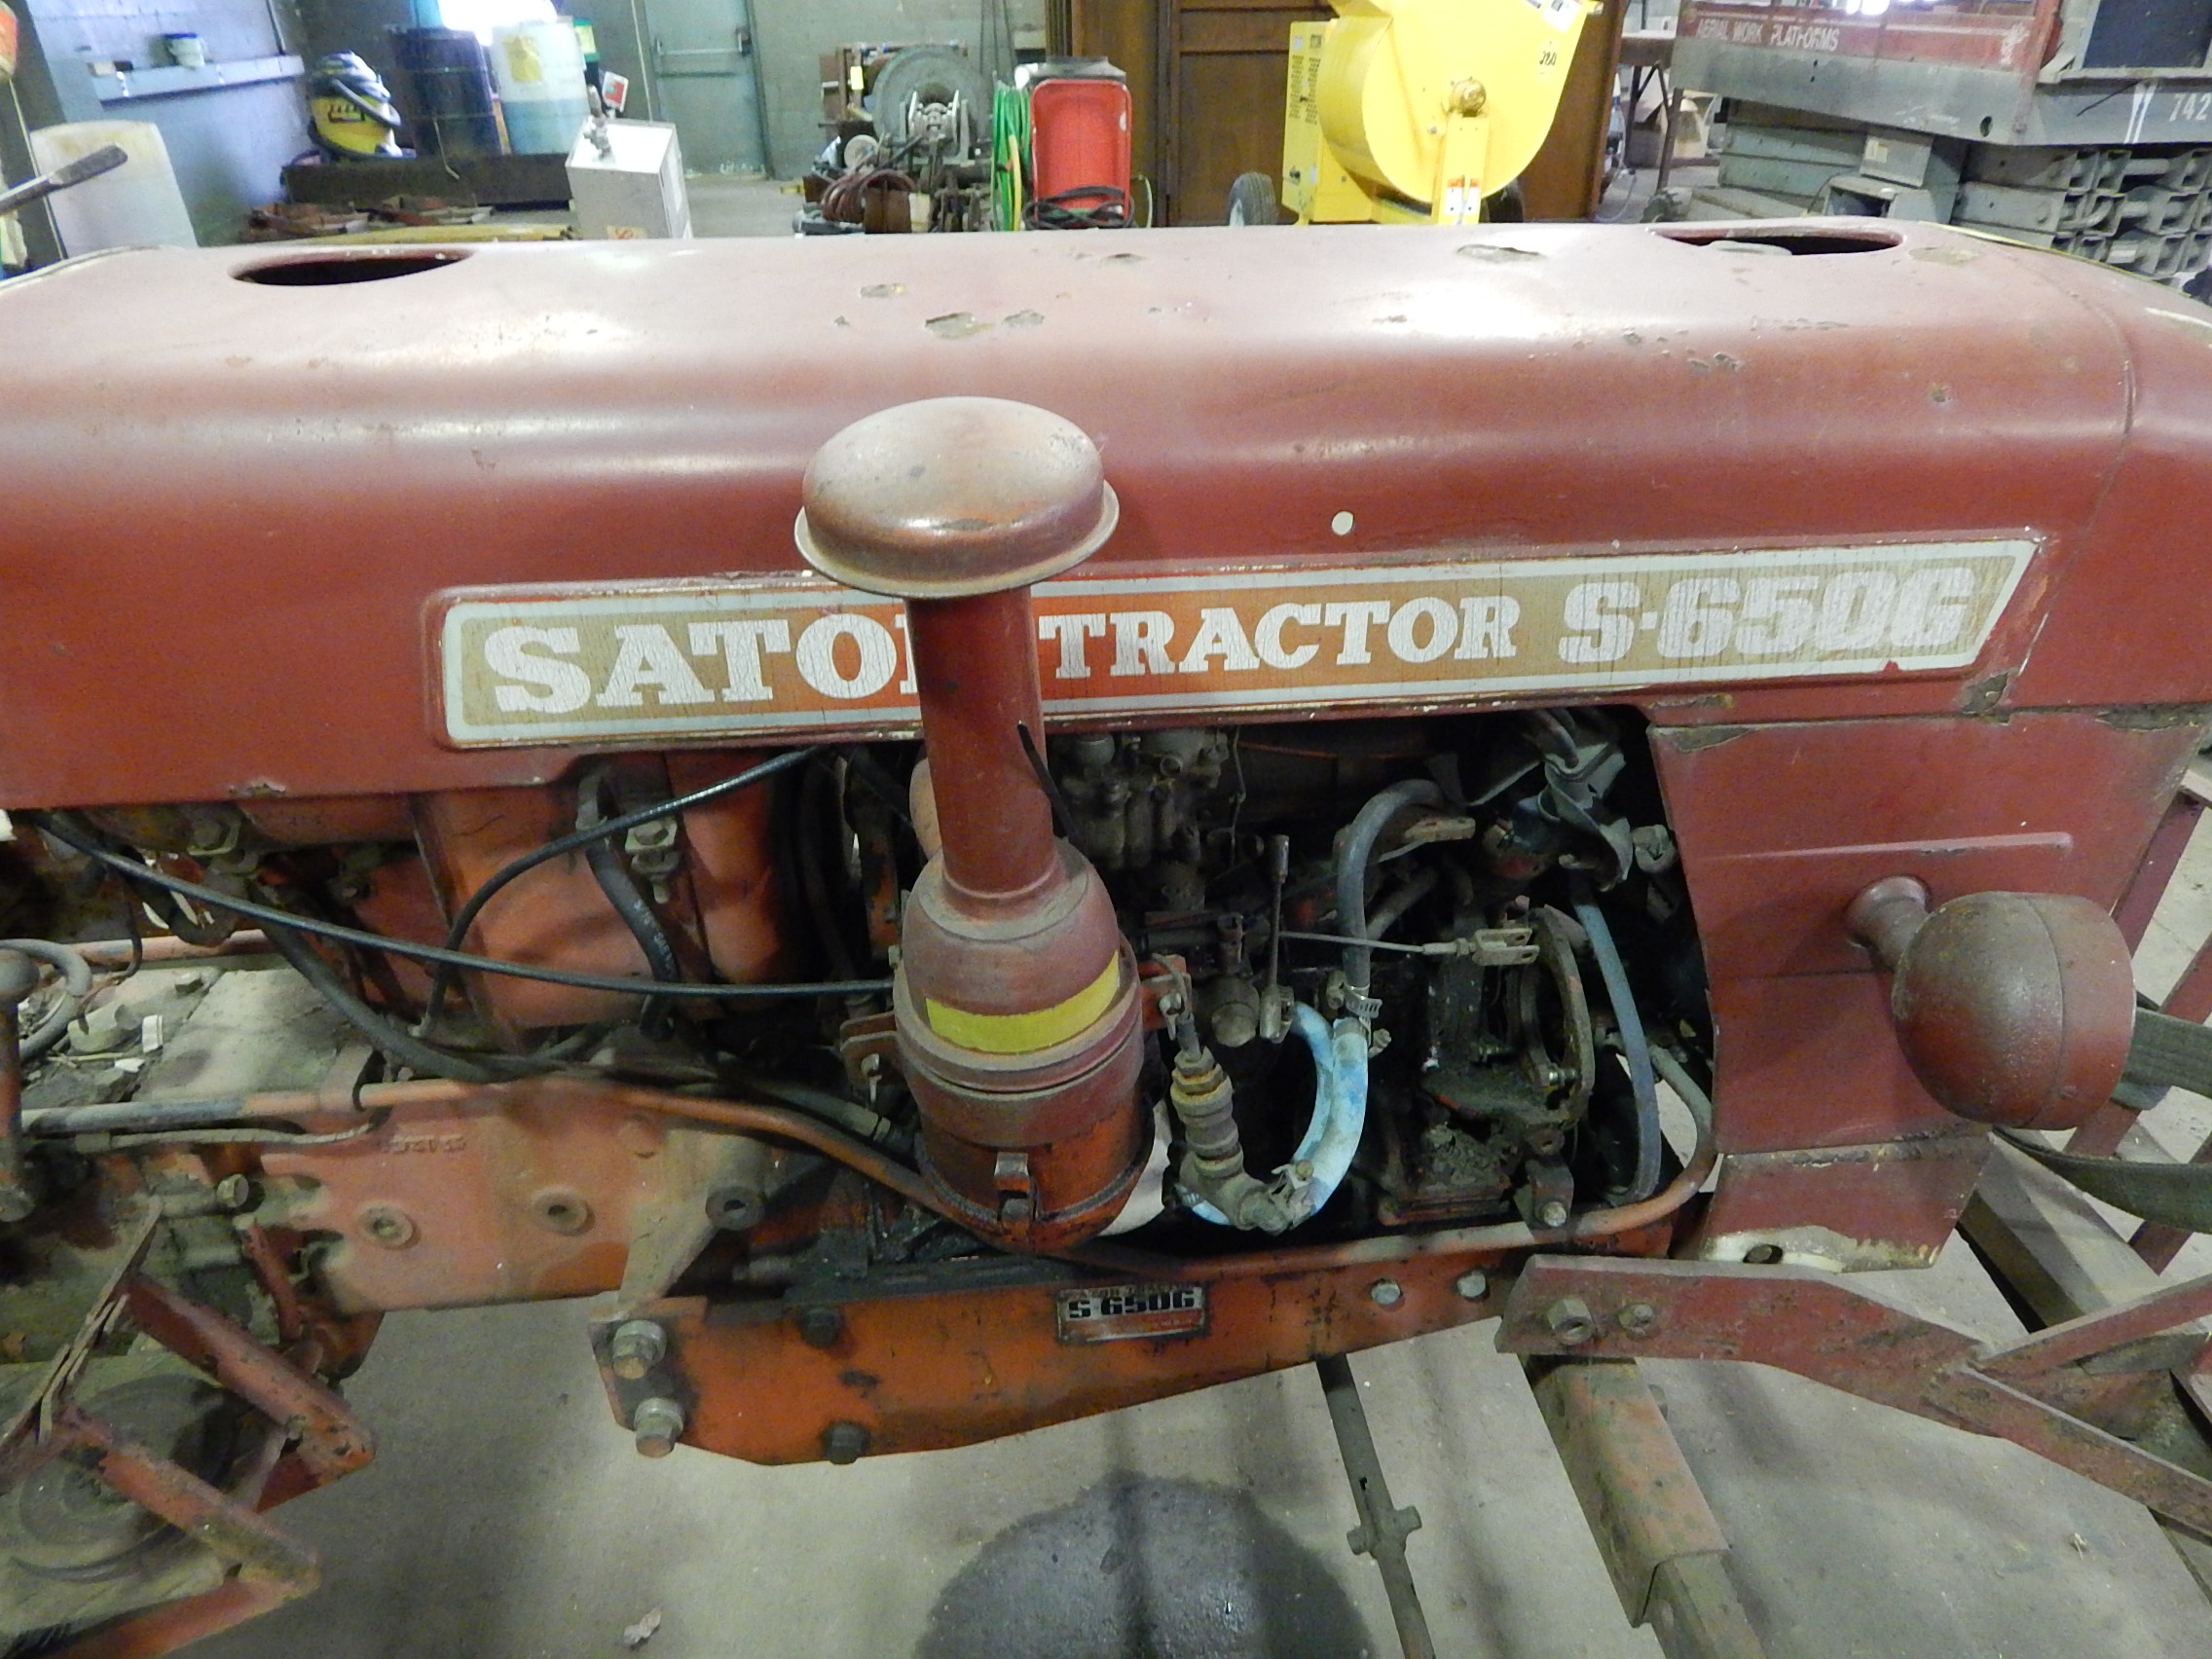 satoh model s-650g tractor, 4 cylinder gas engine, 2 wd ... satoh tractor 4 cylinder engine diagram